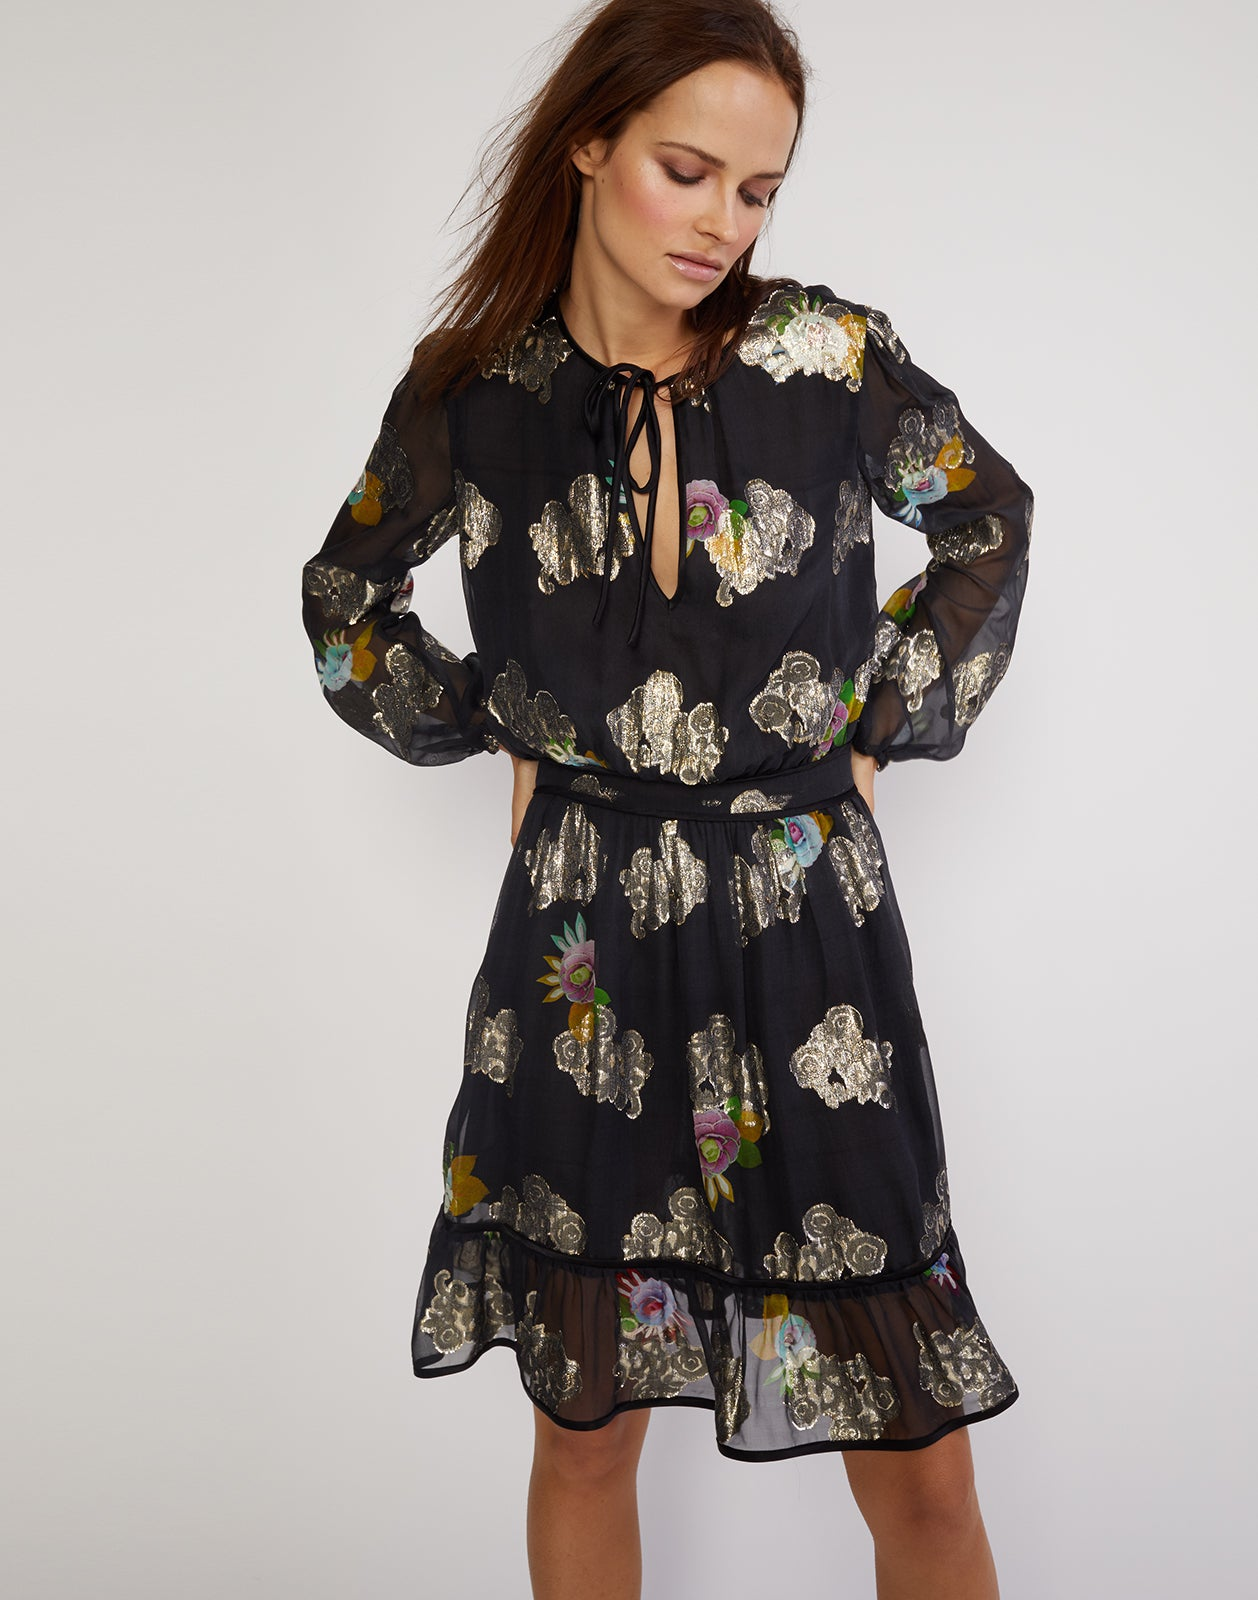 Front view of the sheer metallic floral print dress with ruffle flounce bottom